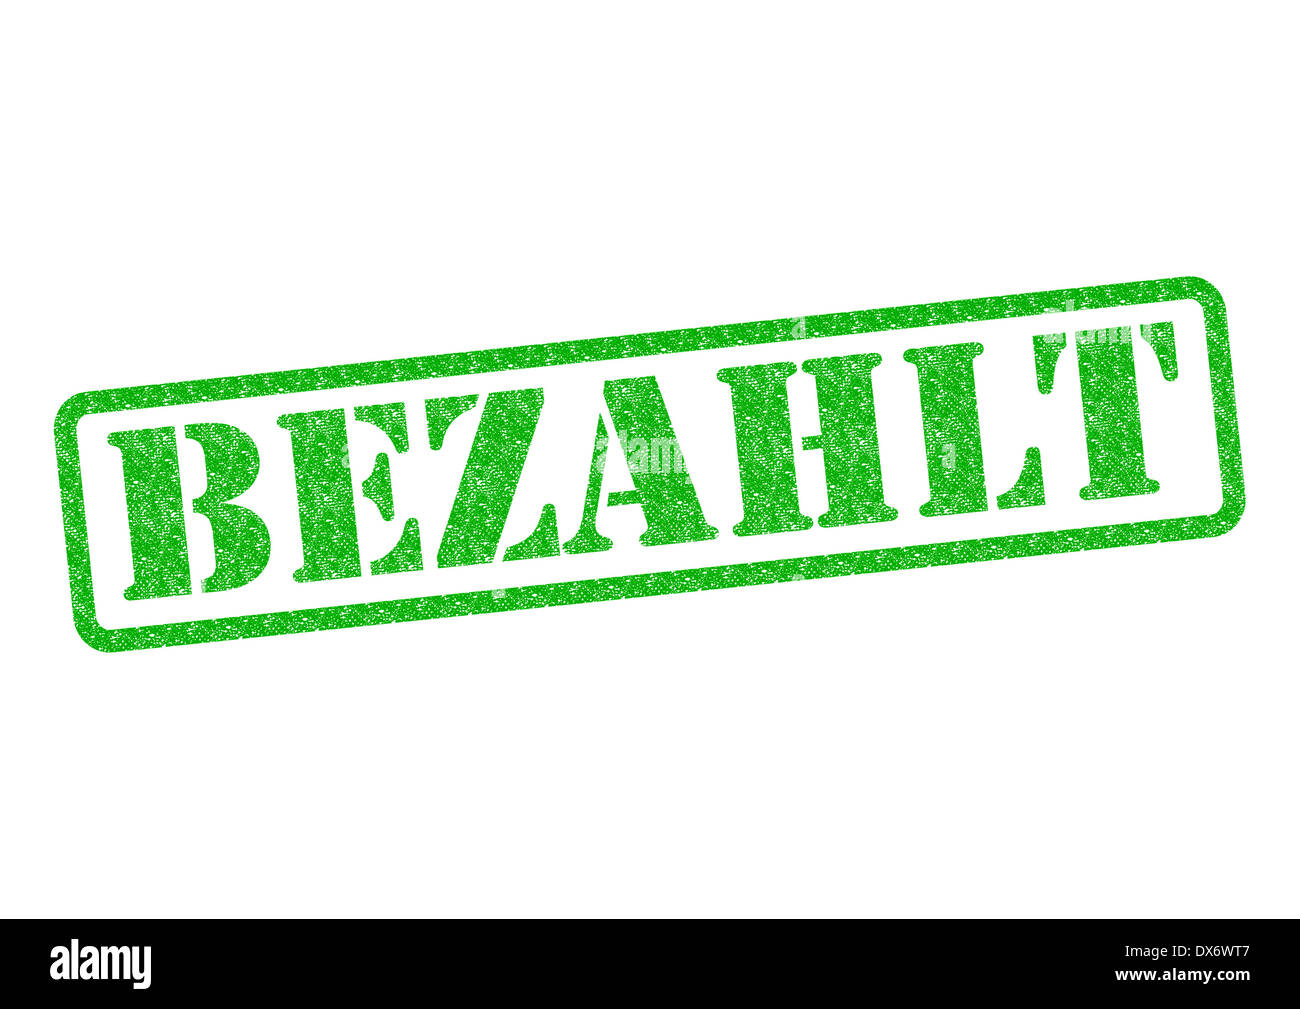 Bezahlt (Paid) Stempel/Stamp over a white background. - Stock Image